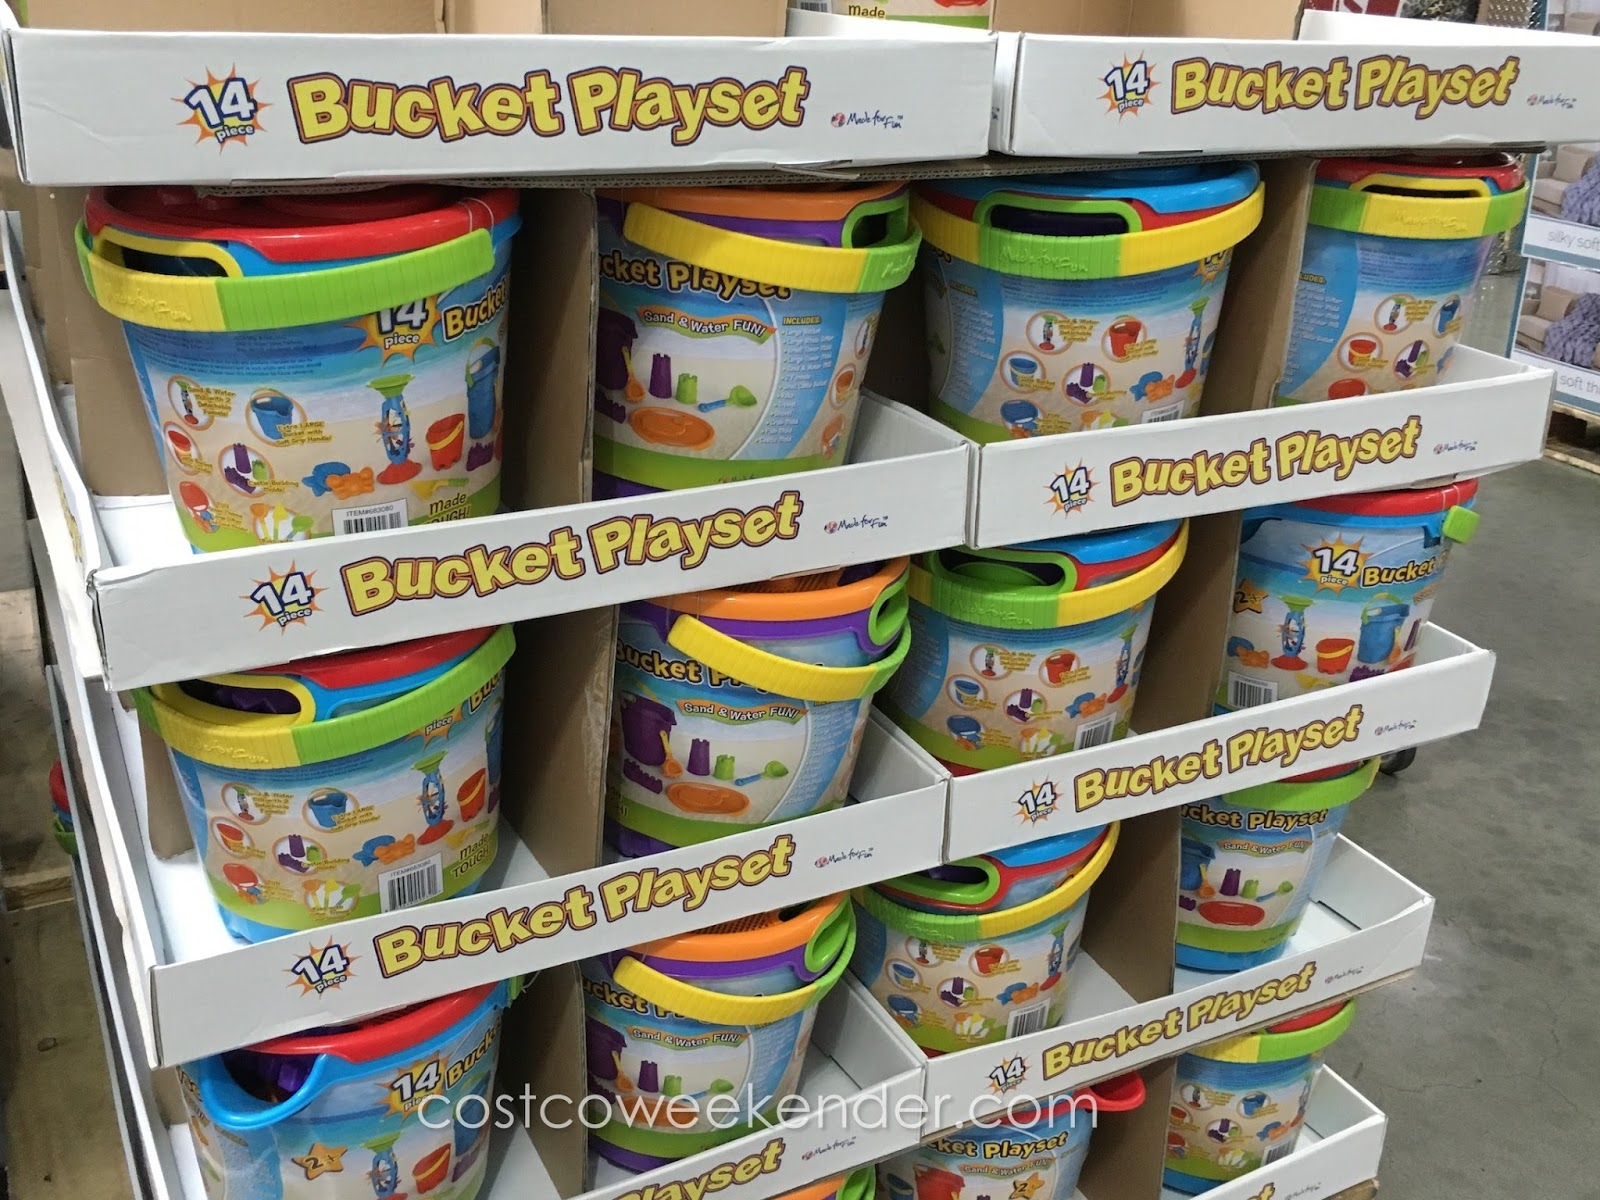 14 piece bucket playset sand and water fun costco weekender - Costco toys for kids ...